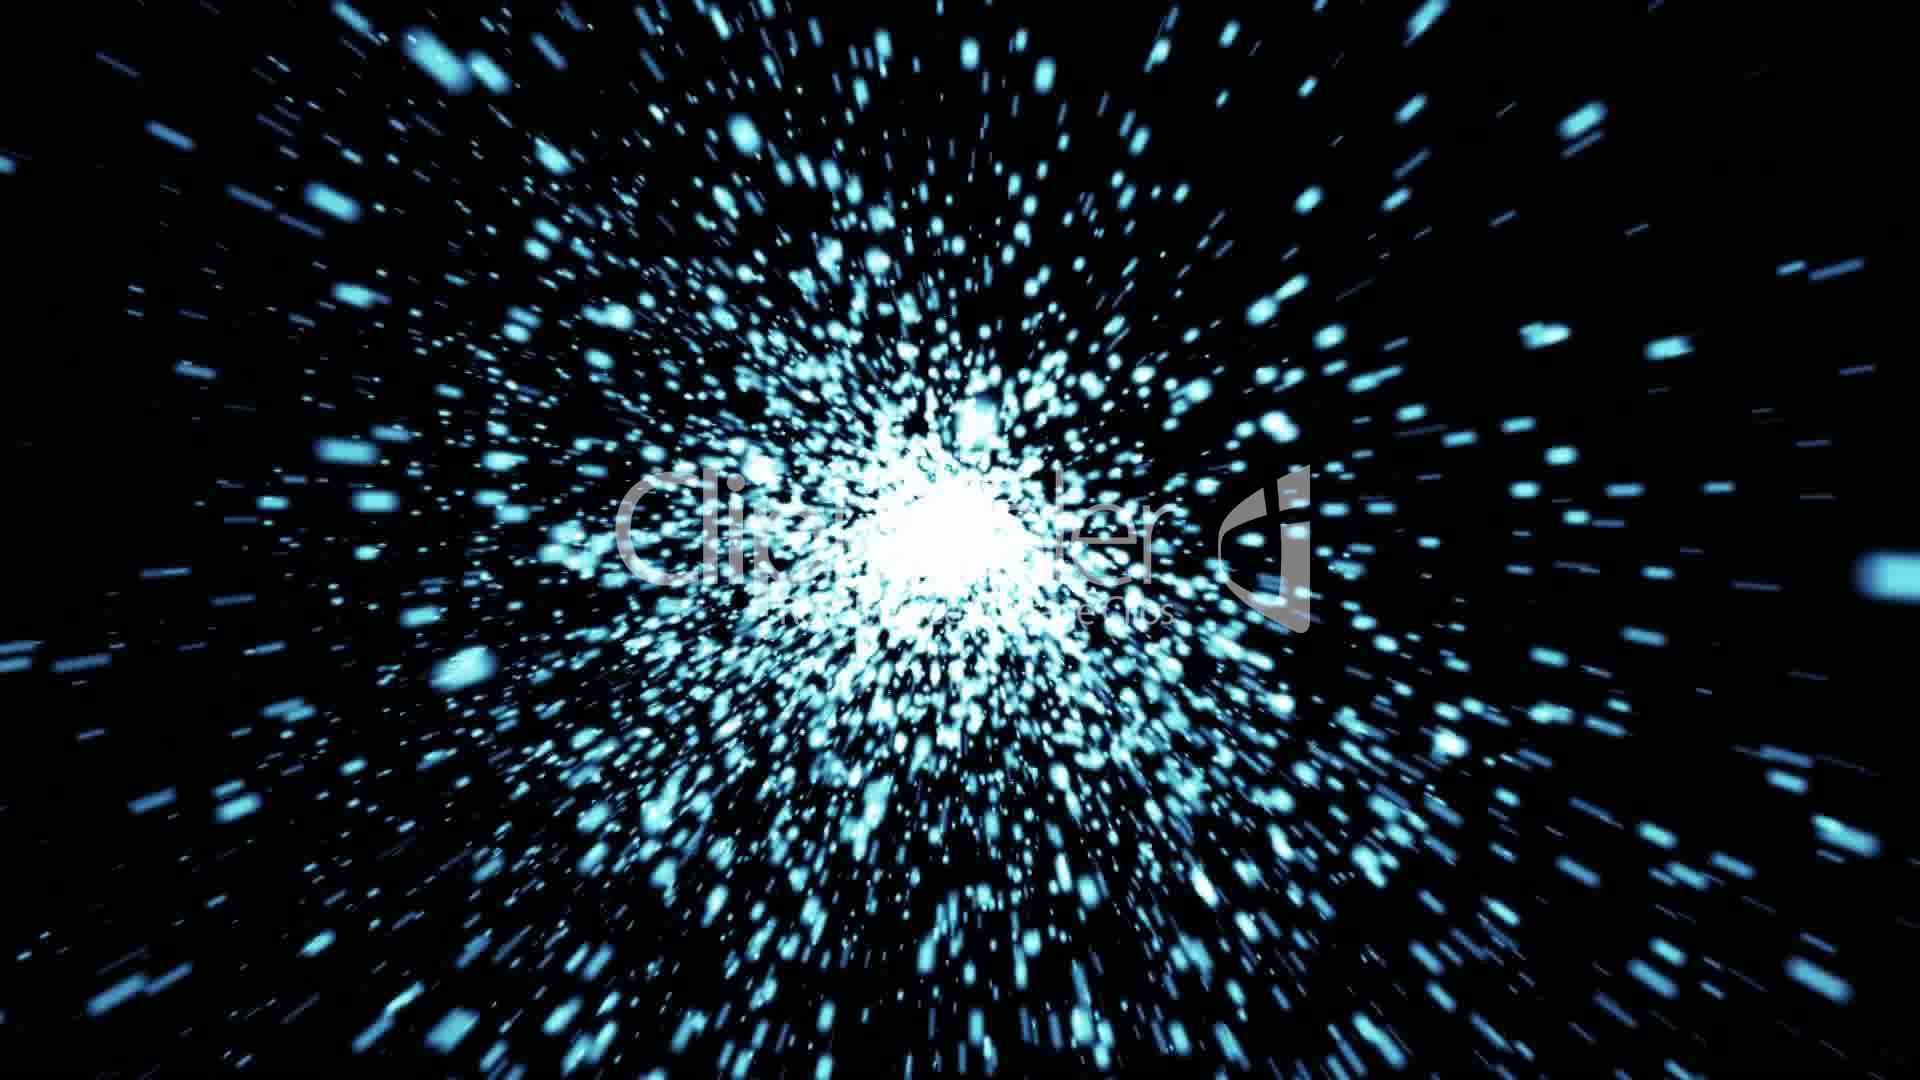 Power In Motion >> Abstract background of space with particles video: Royalty